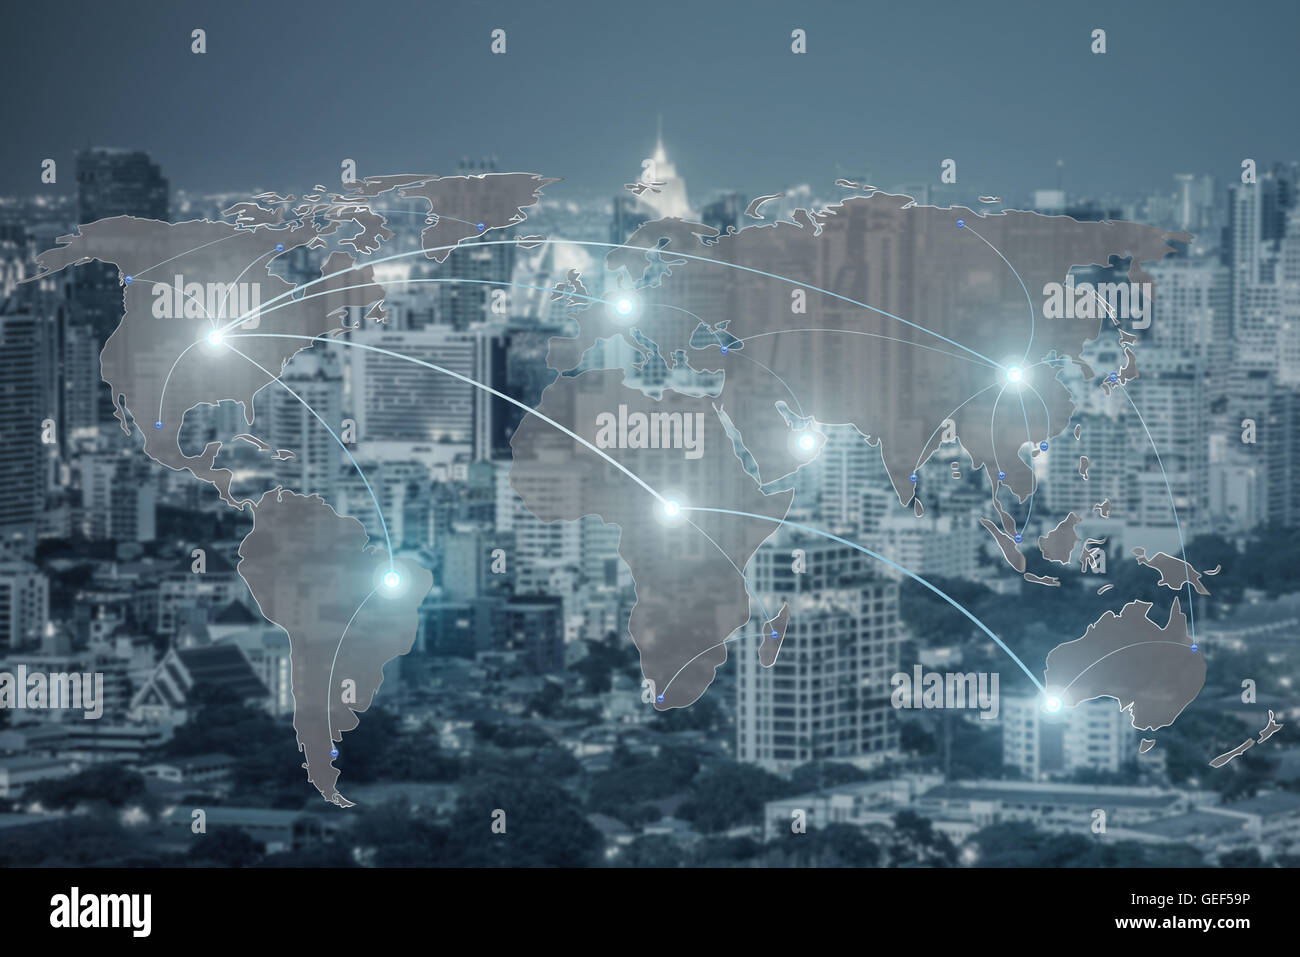 Networking concept - Network and world map on blur city use for global network partners background.(Elements of - Stock Image